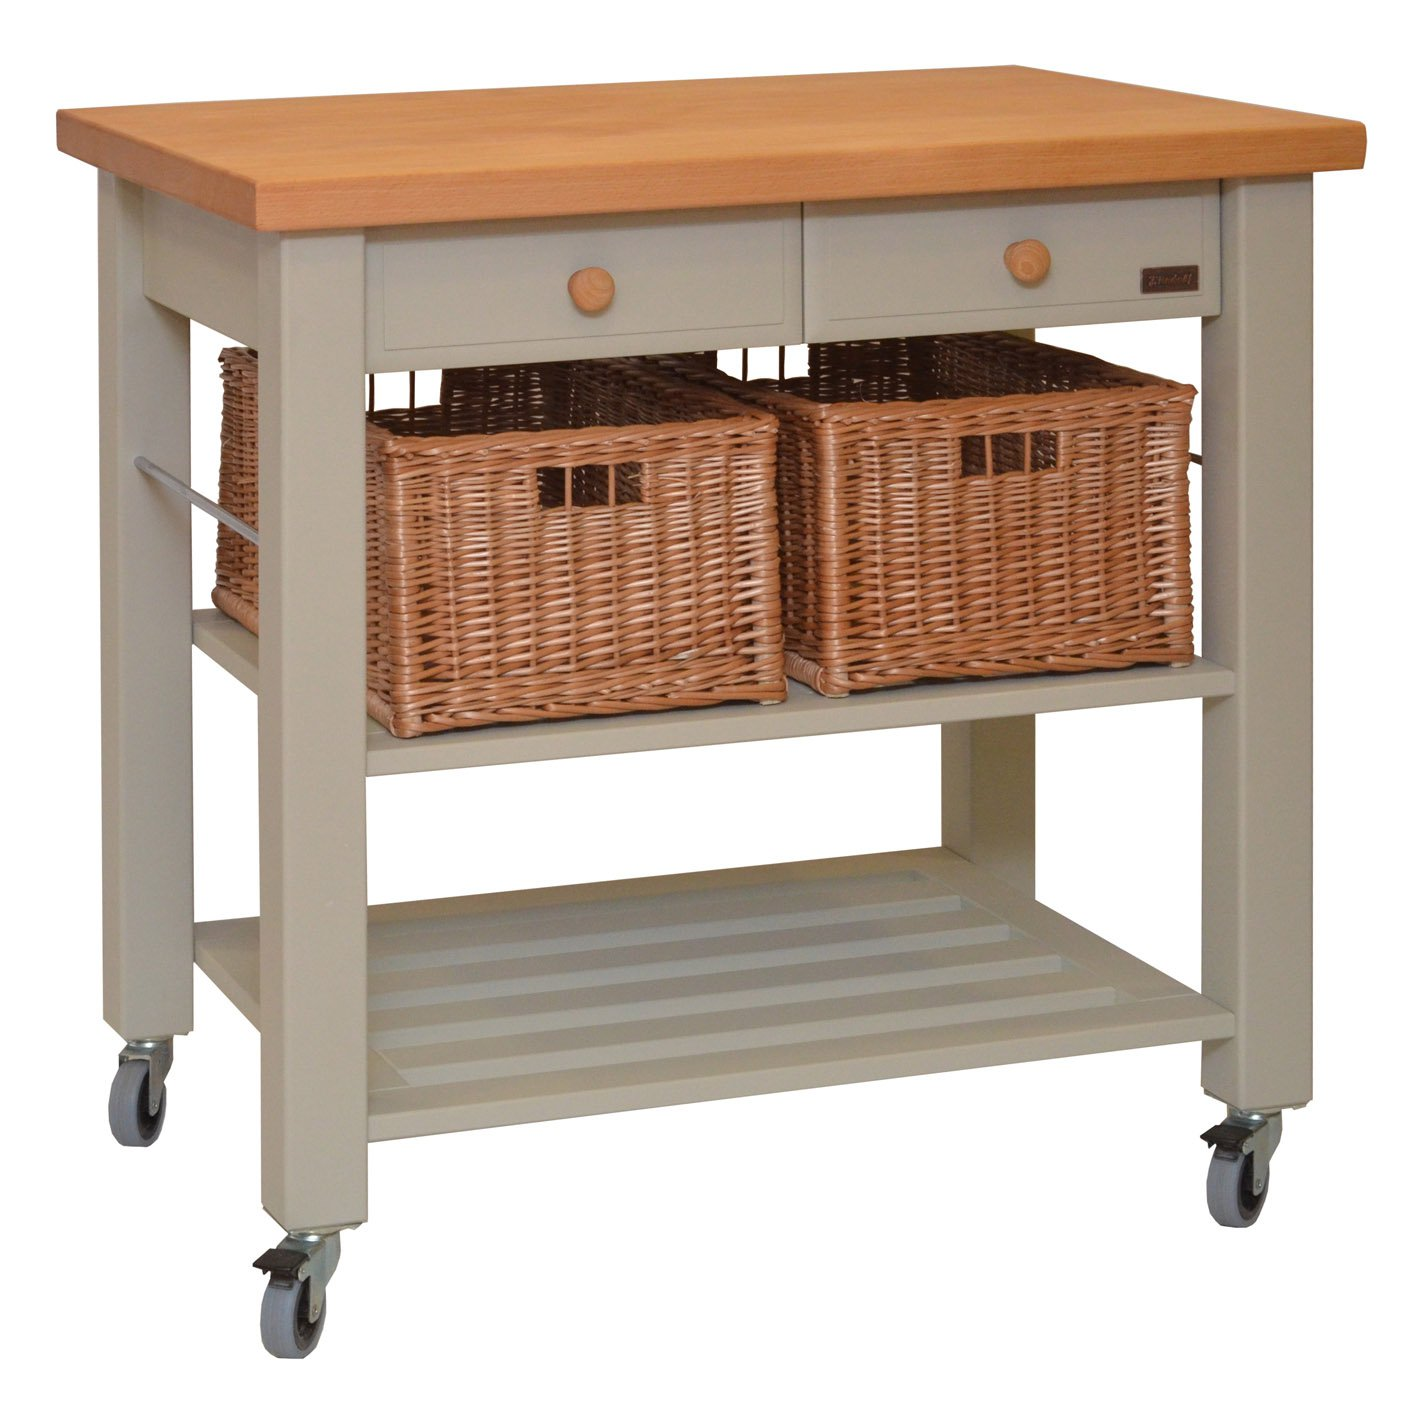 Hungerford Trolleys The Lambourn 2 Drawer French Grey Kitchen Trolley at Barnitts Online Store ...